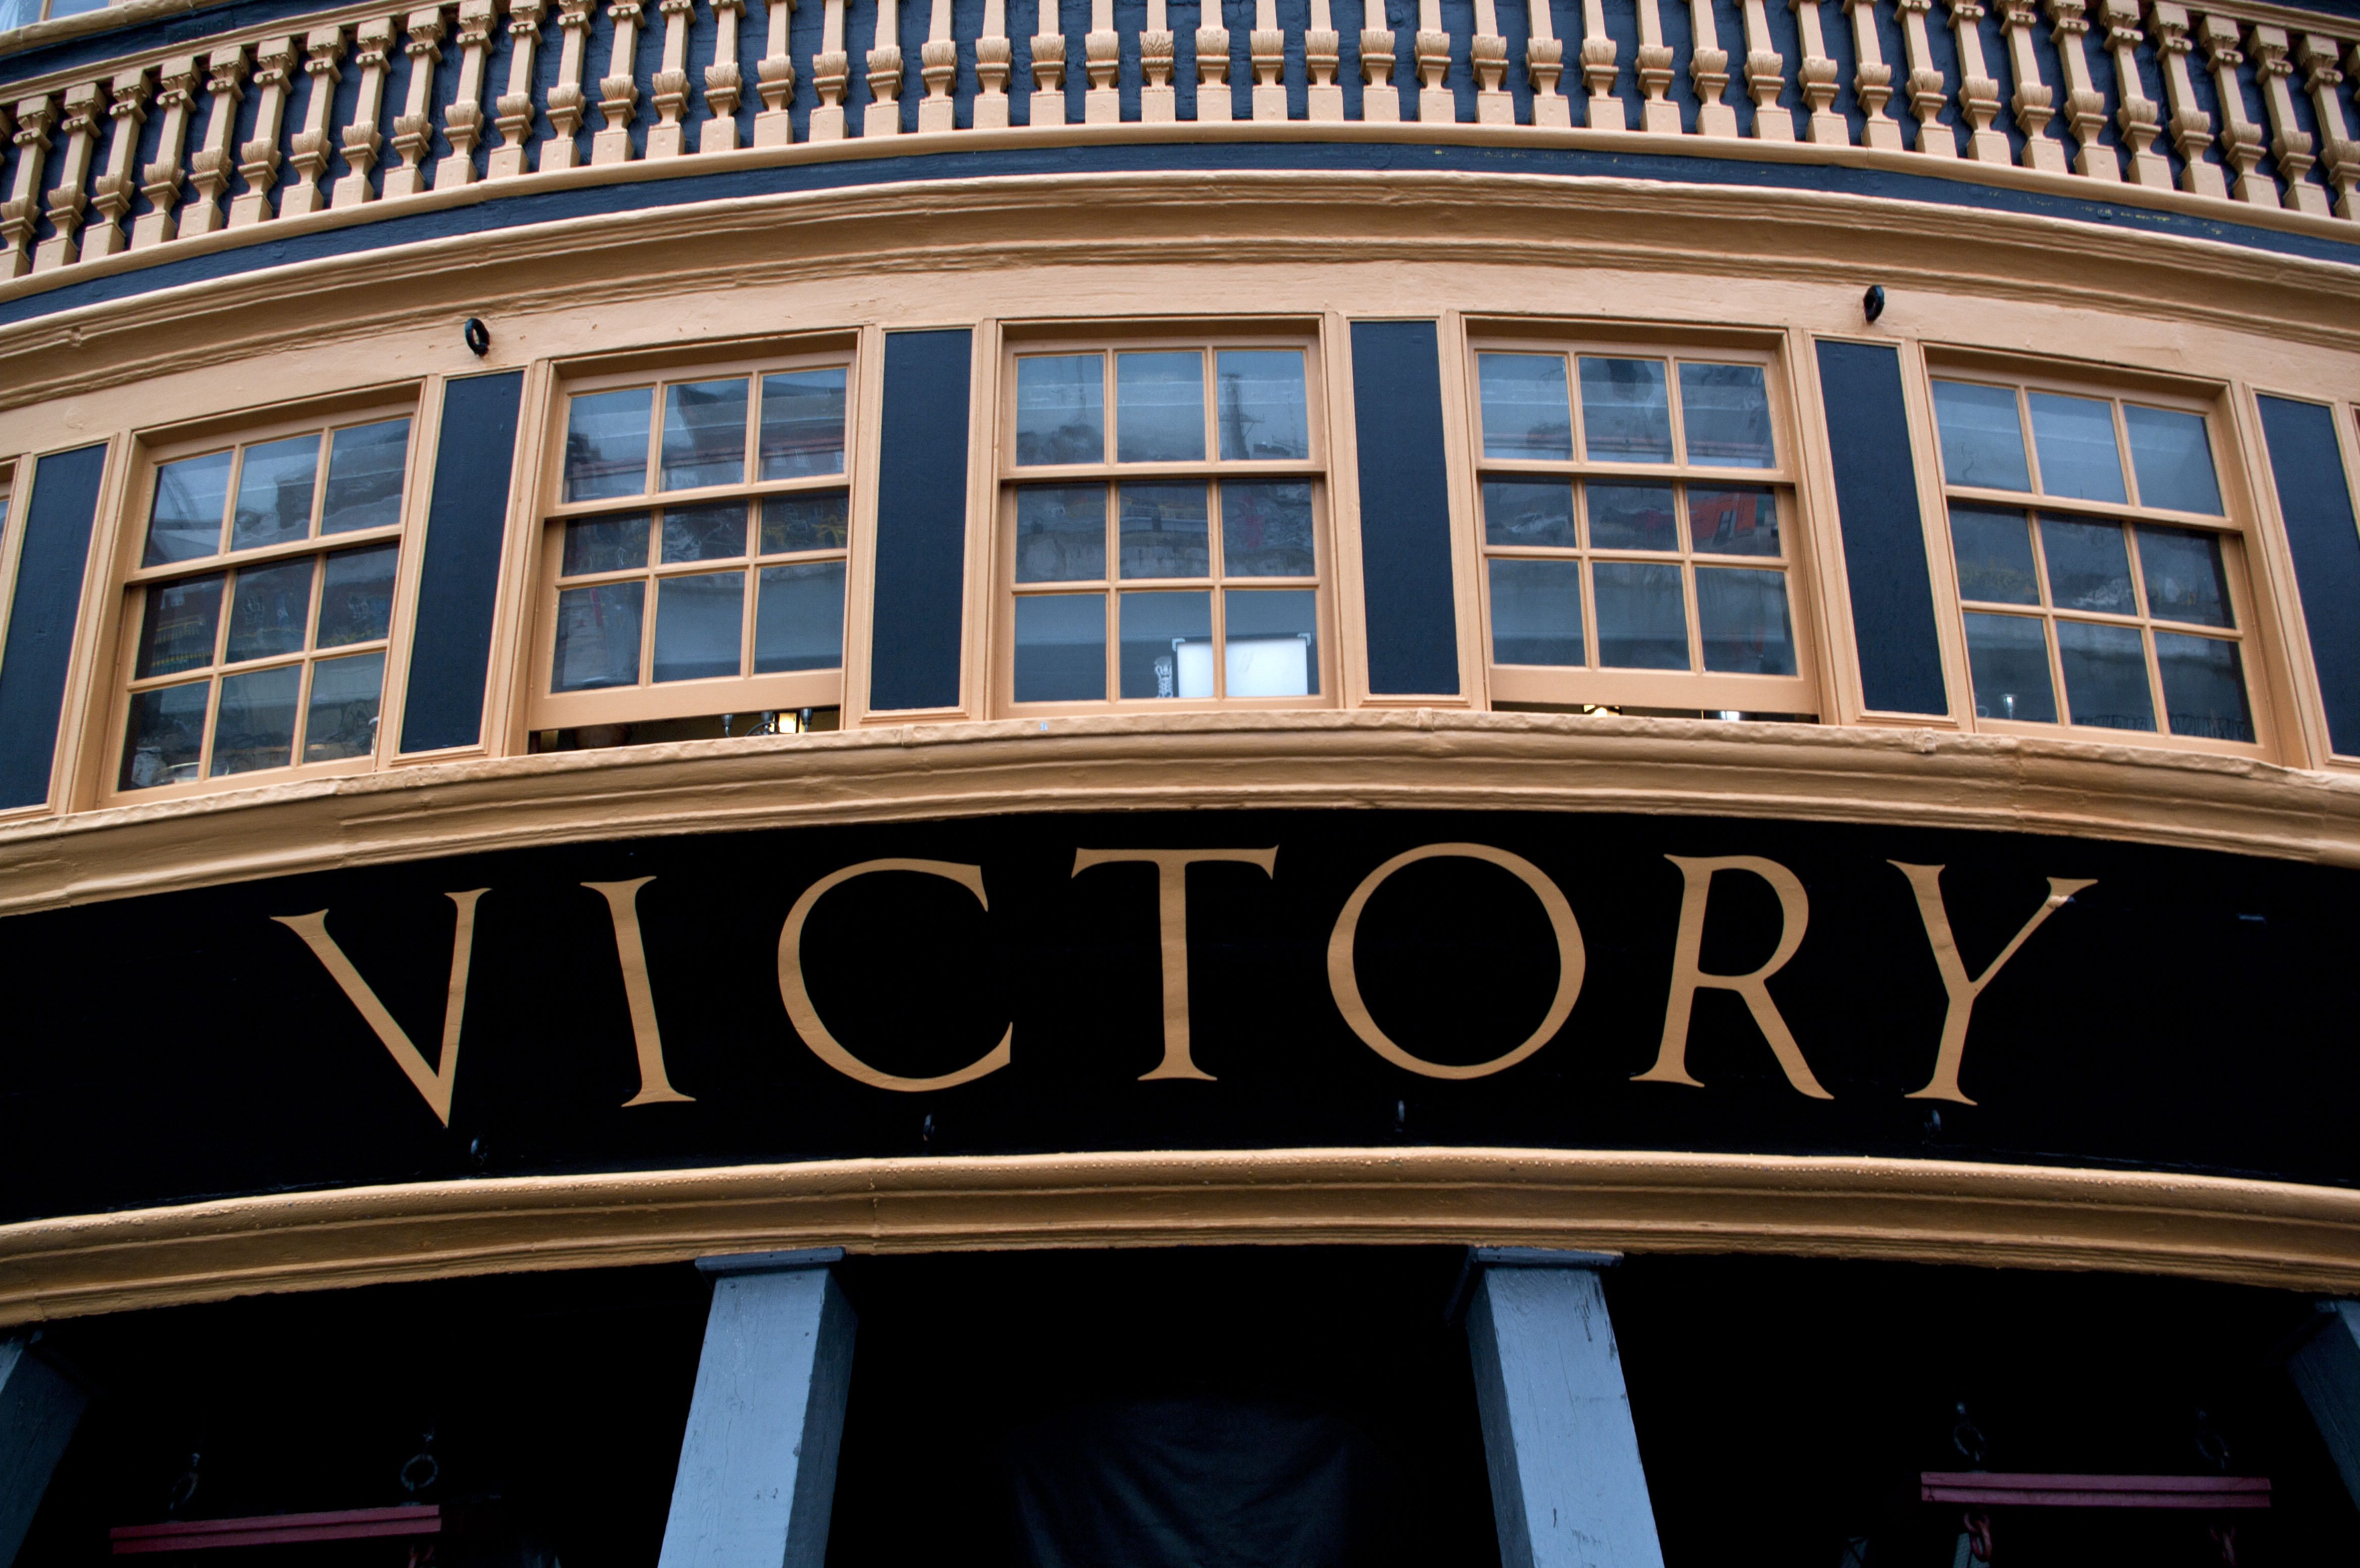 HMS Victory aft detail - Copyright R.Weal 2010